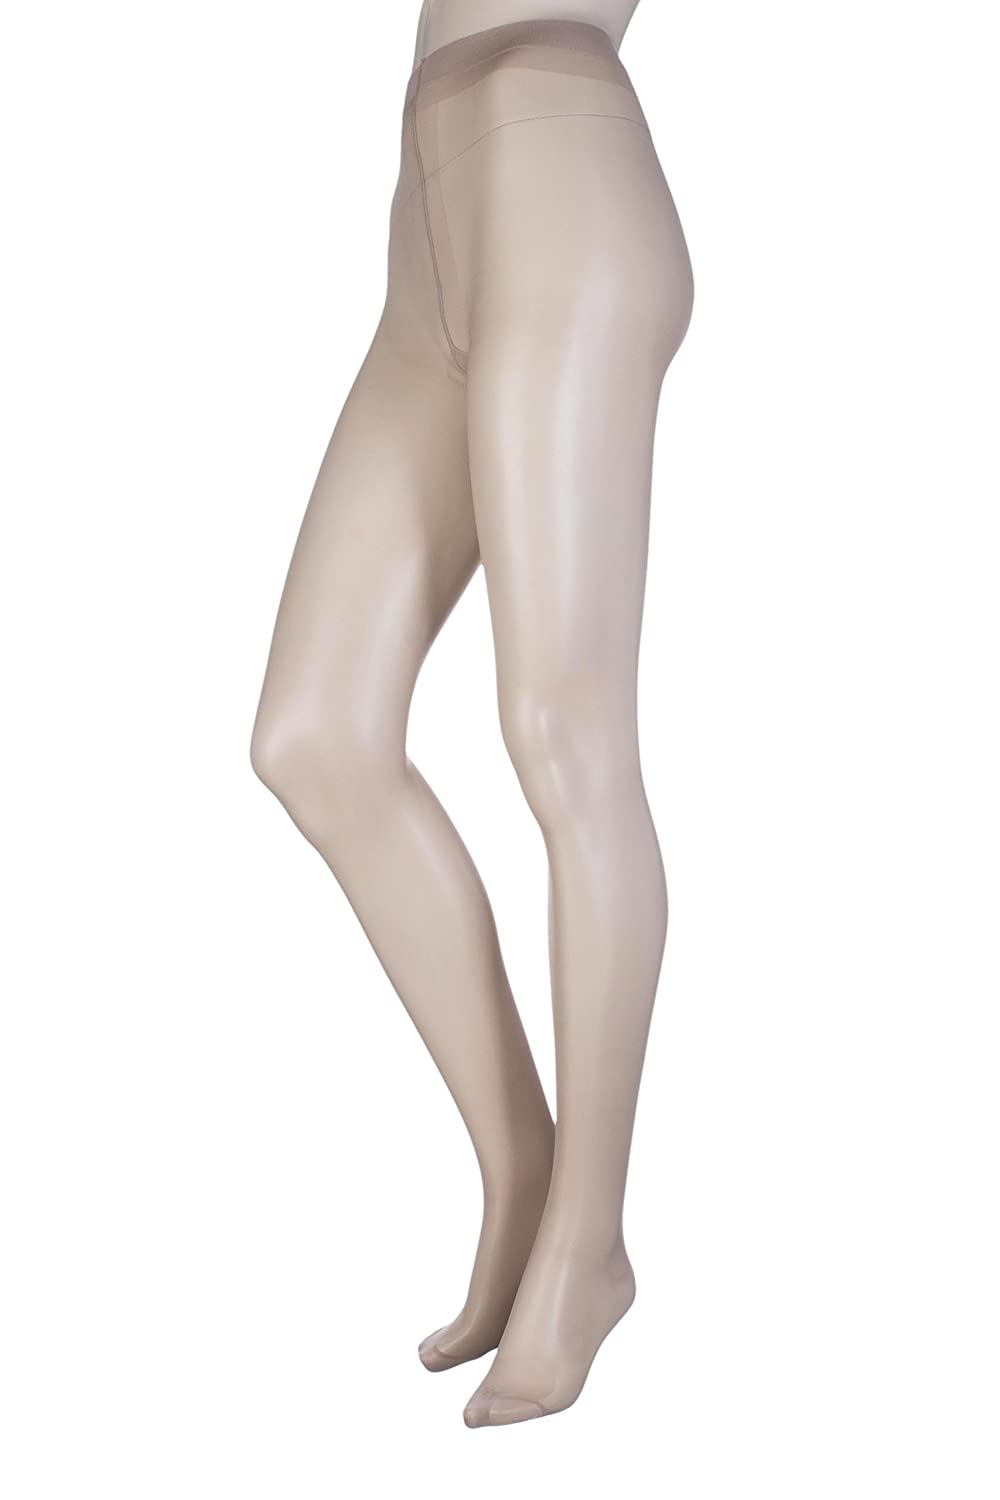 c422980c67 Ladies 1 Pair Oroblu Repos 40 Denier Graduated Compression Tights:  Amazon.co.uk: Clothing